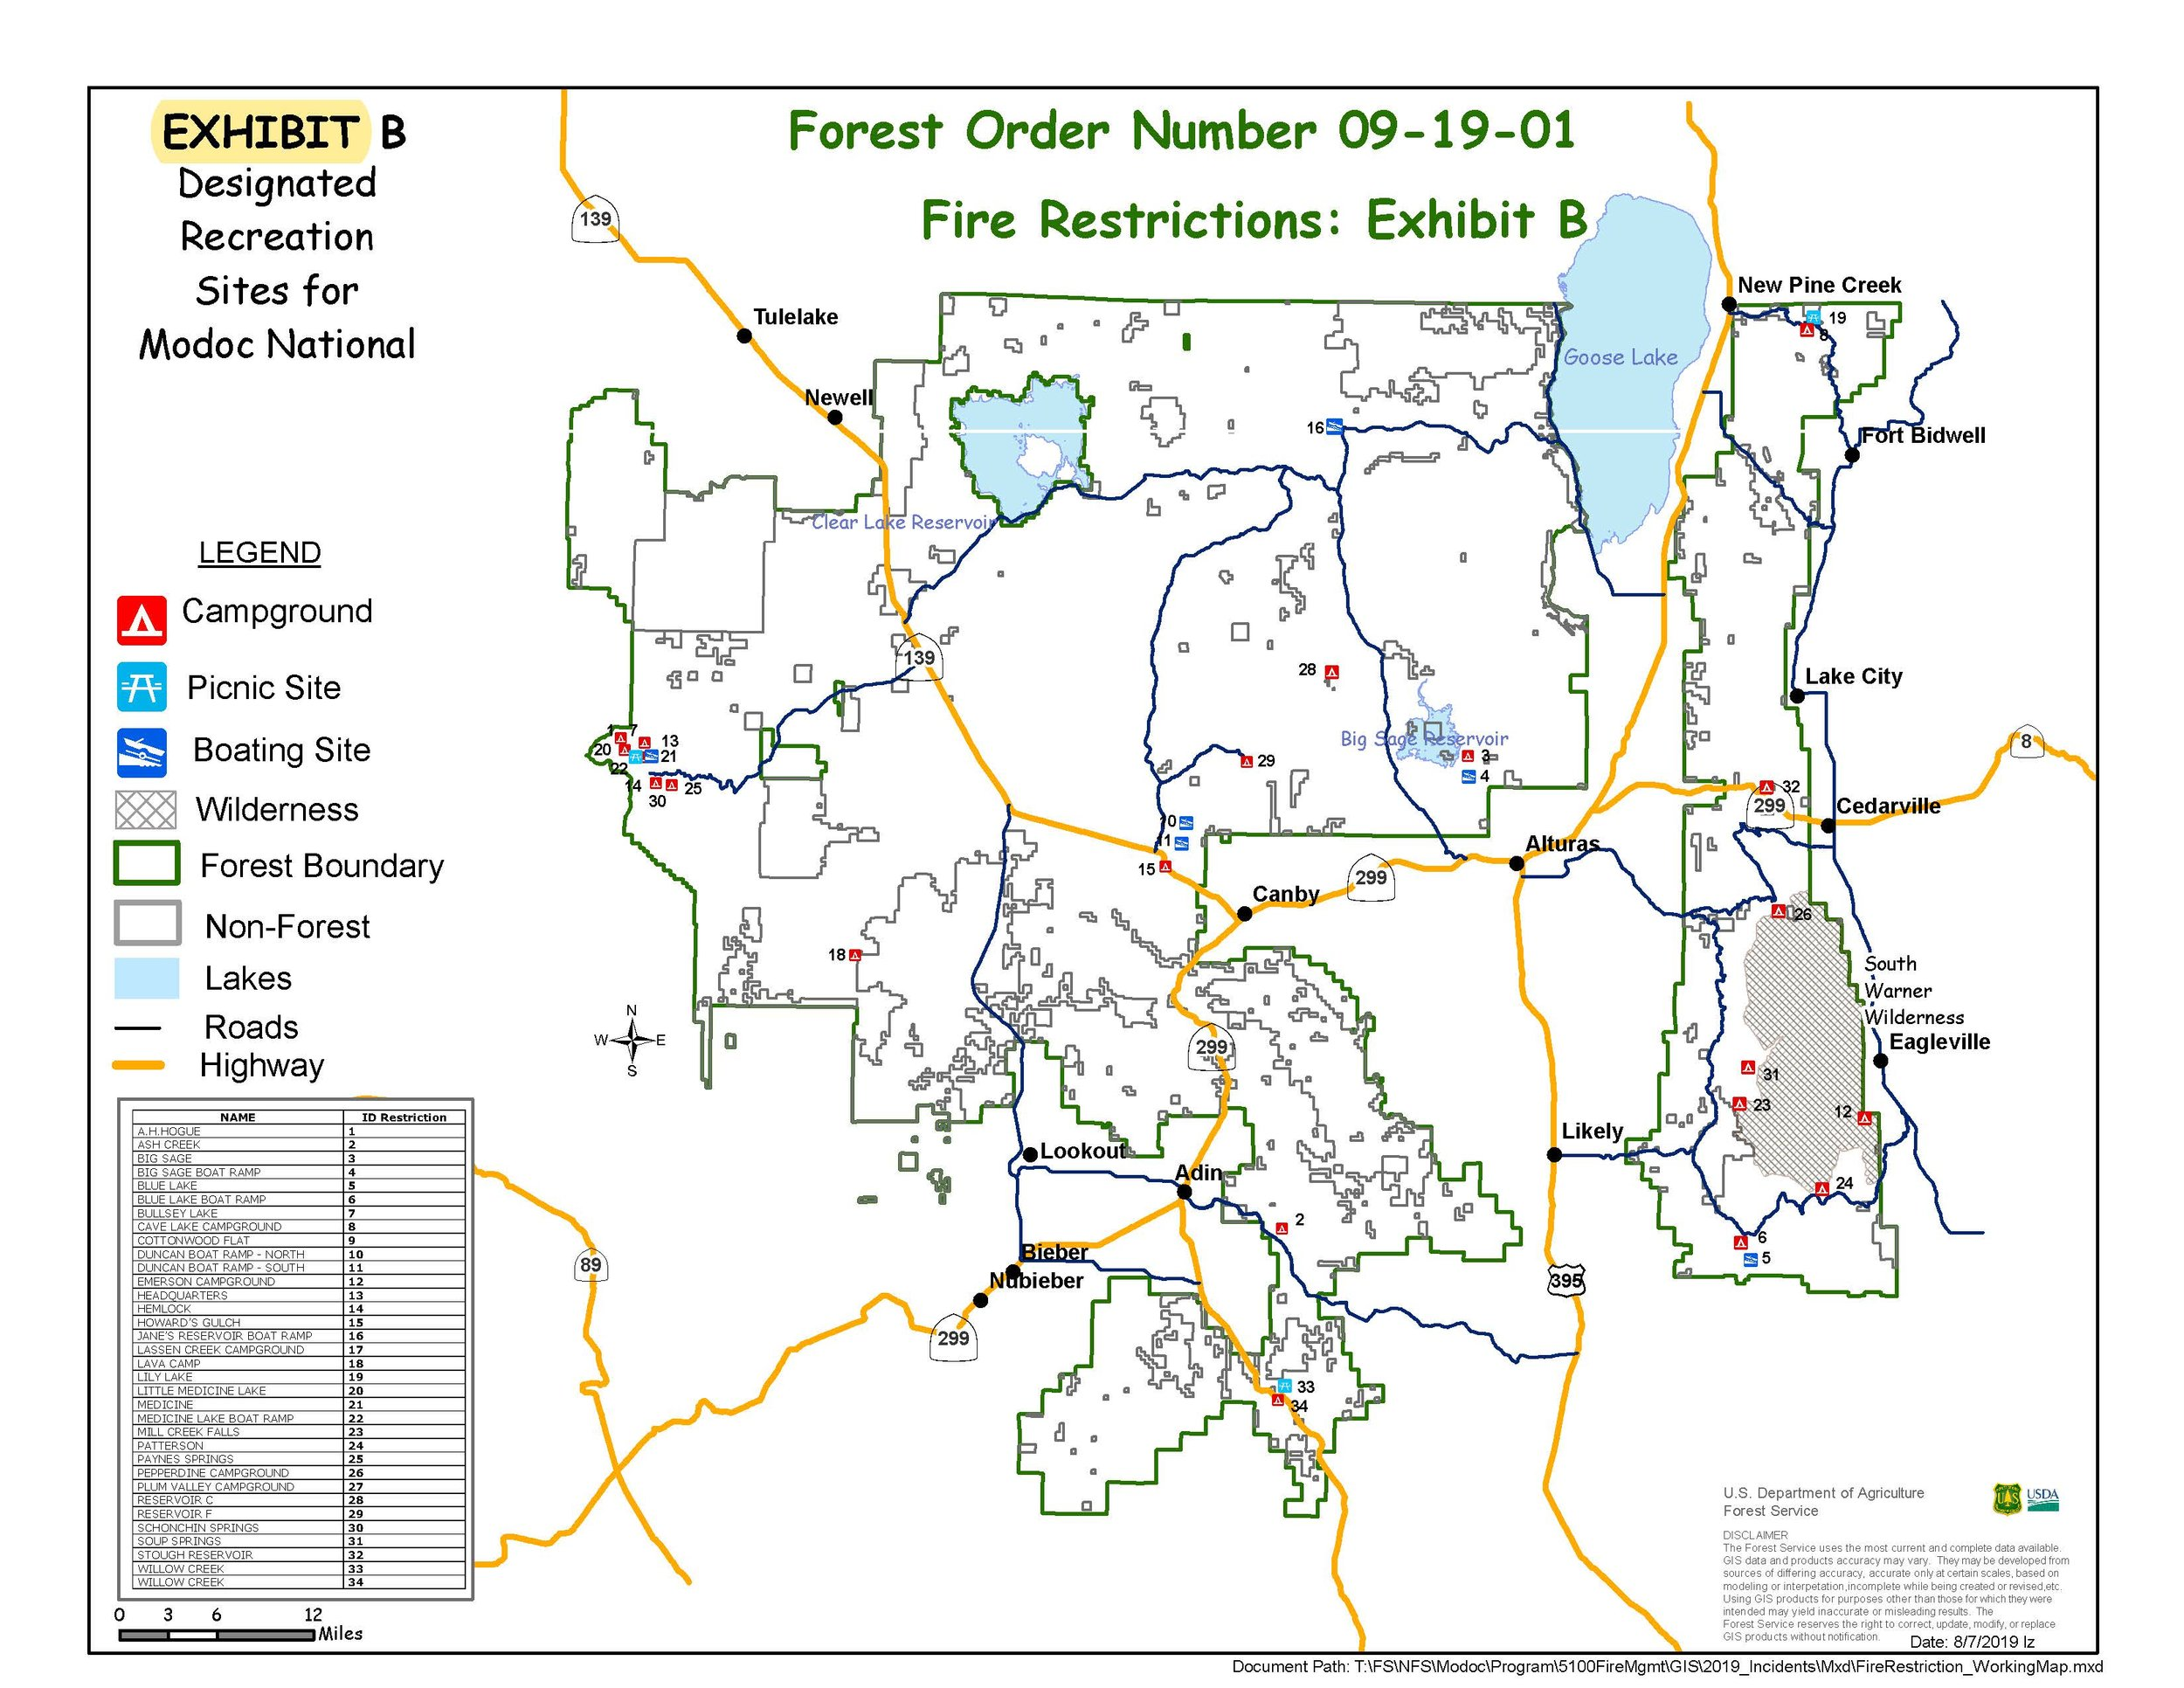 Forest Order No. 09-19-01, Exhibit B - Map of designated recreation sites for Modoc National Forest. (click for larger)